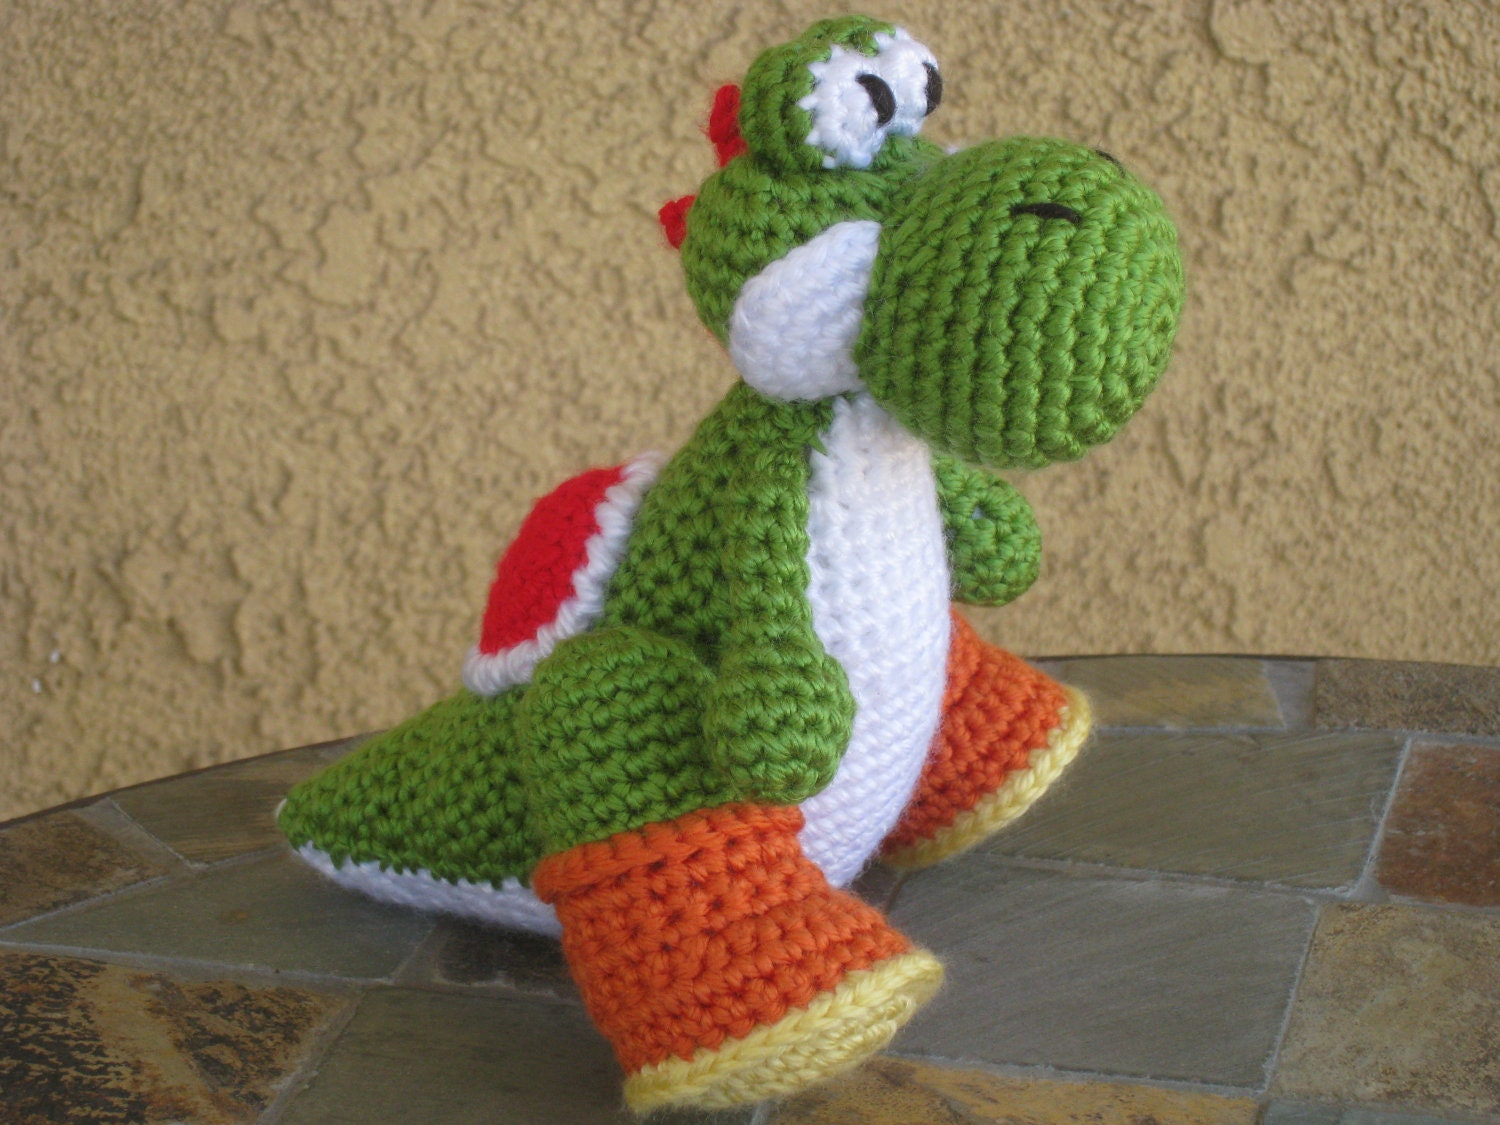 Crochet Patterns Yoshi : yoshi crochet pattern